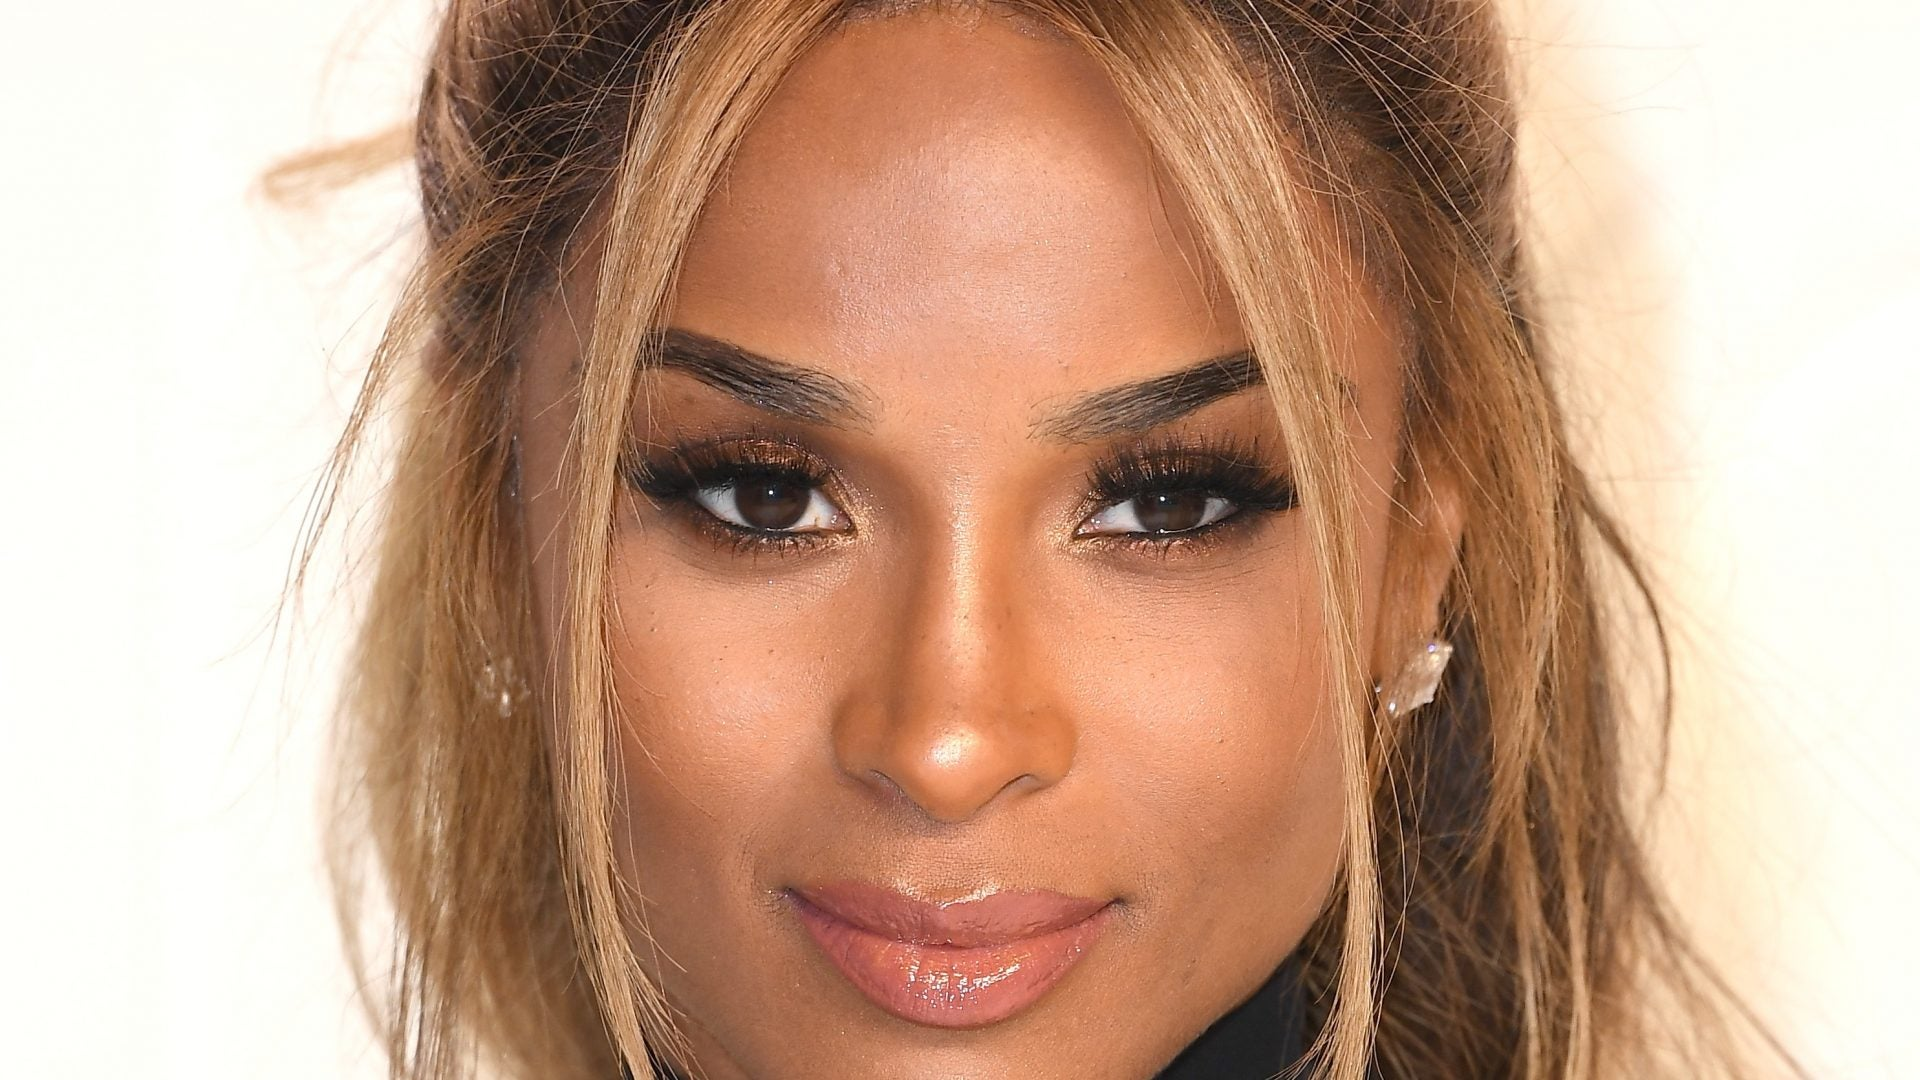 Ciara Switched Up Her Look In 2020 And We Can't Get Enough!